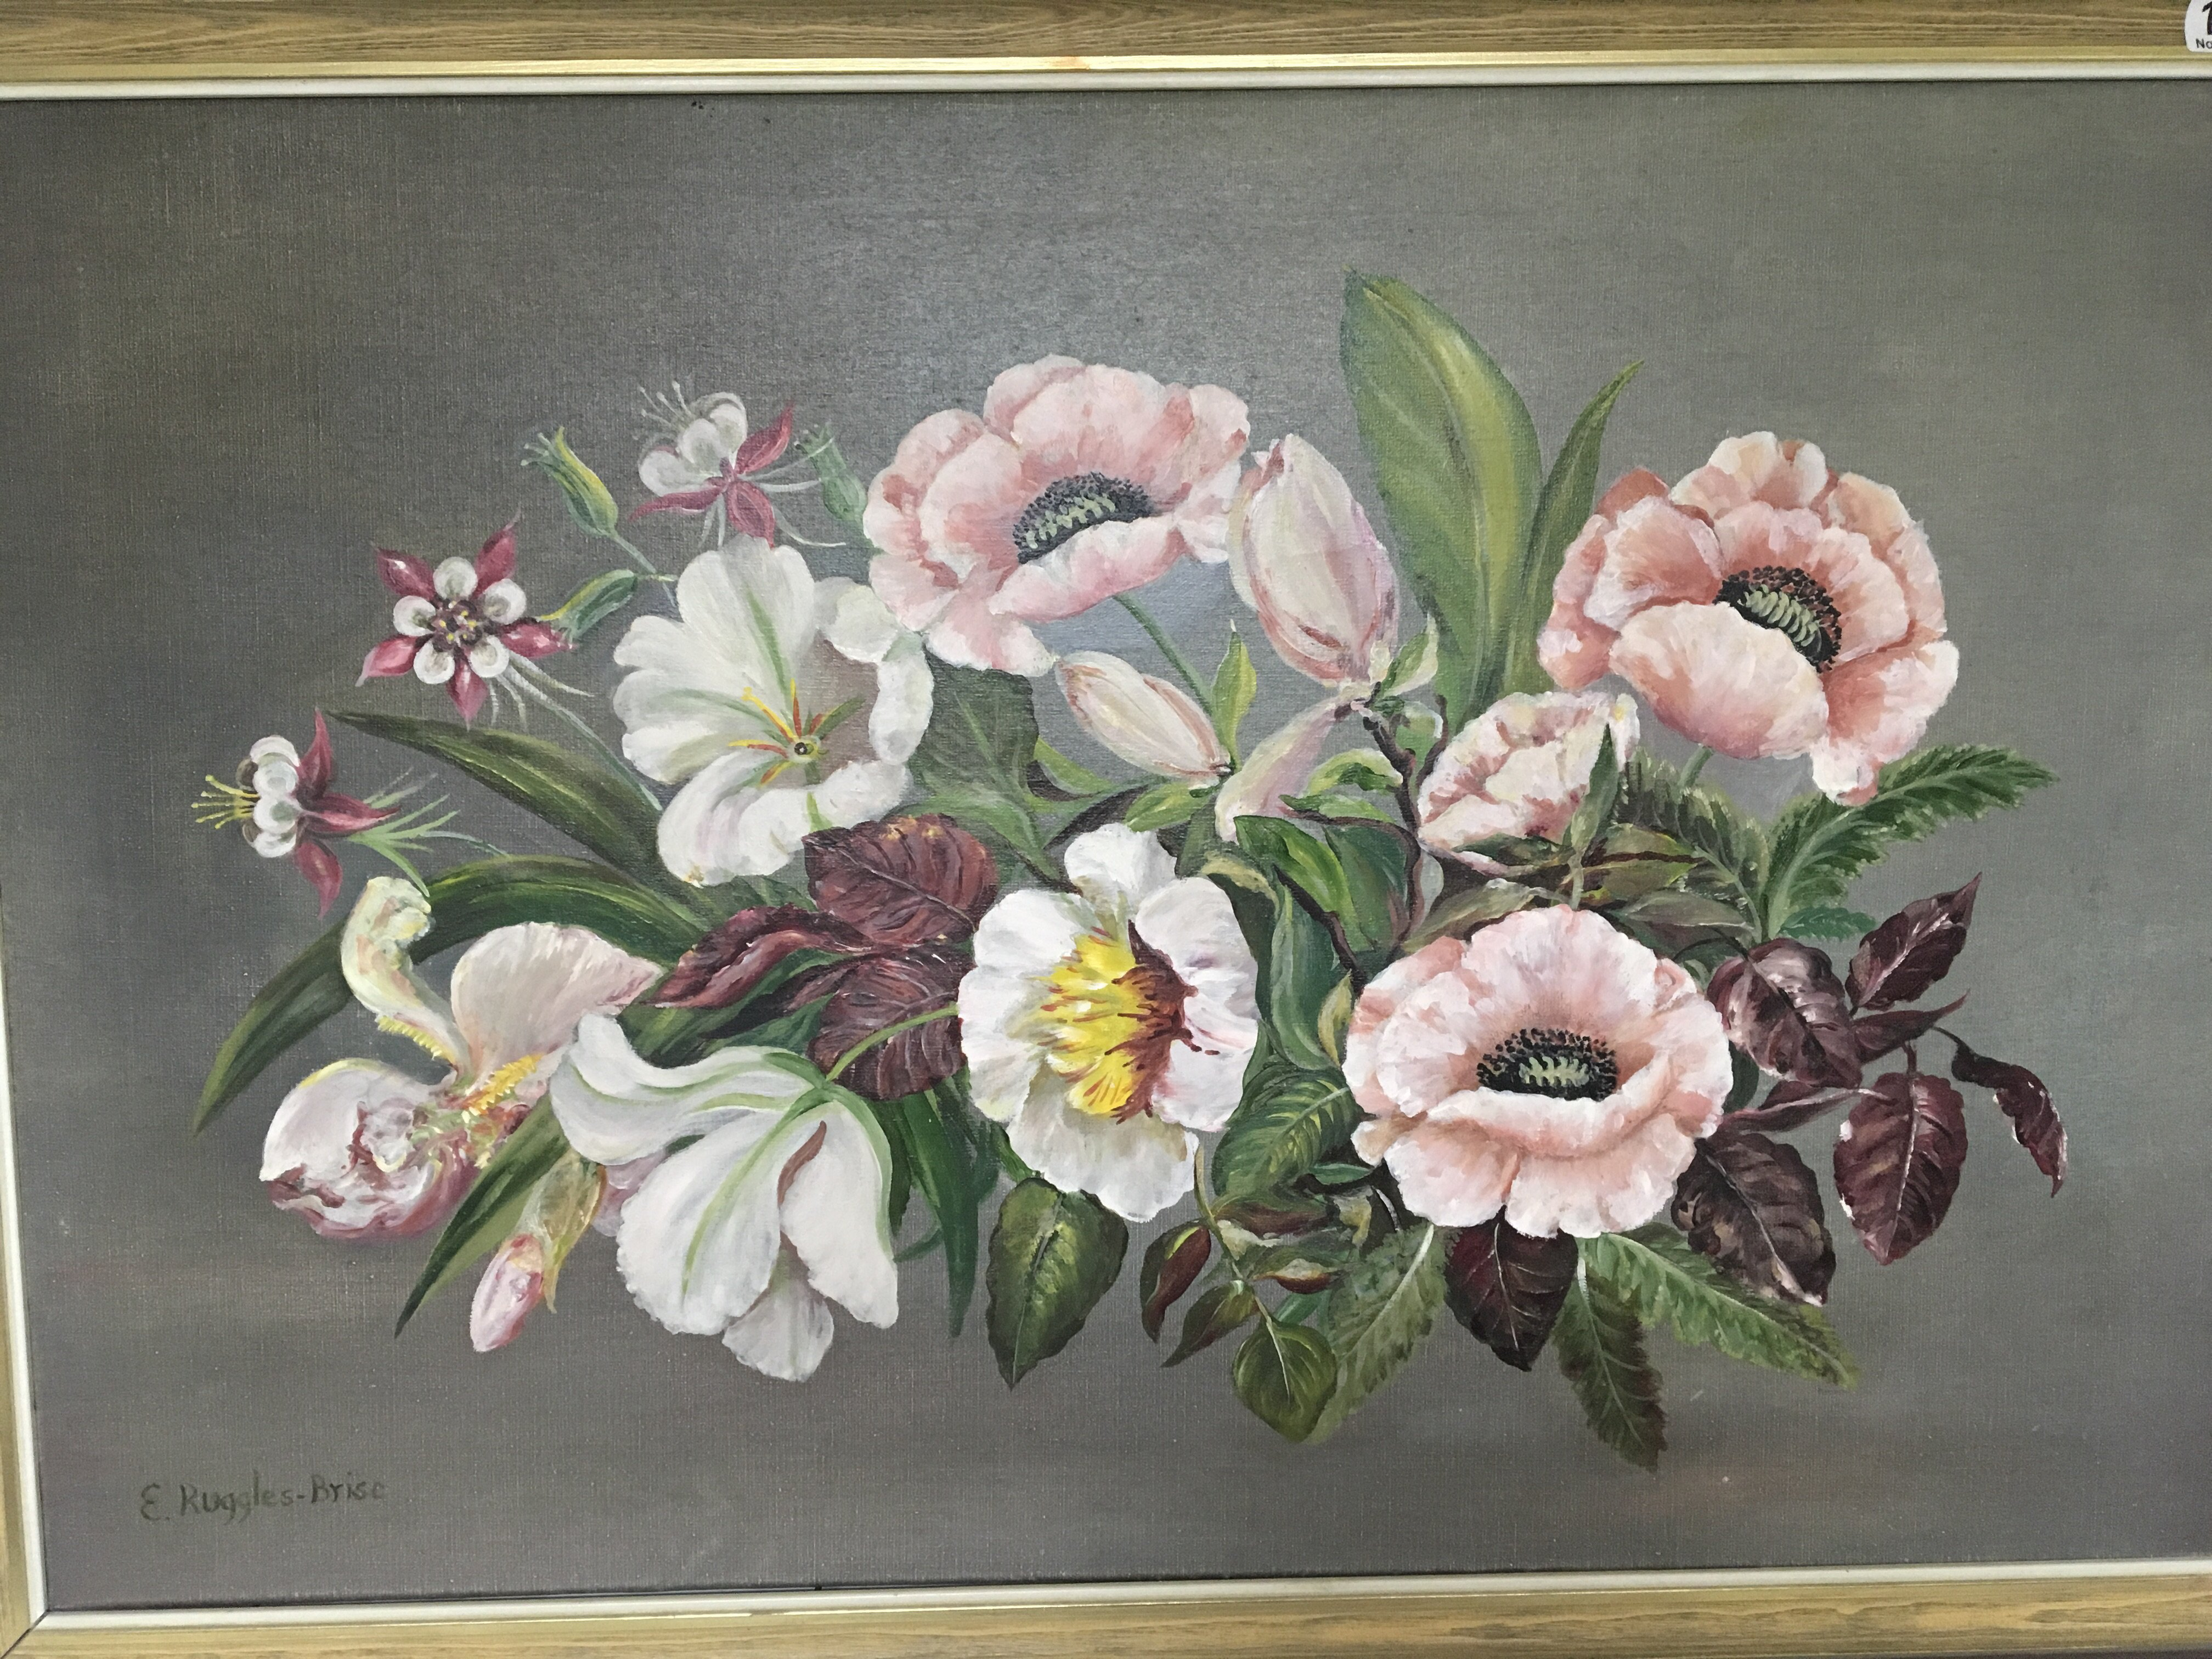 Lot 1237 - A framed oil painting on canvas still life study of flowers and foliage. By Lieutenant-Colonel Sir